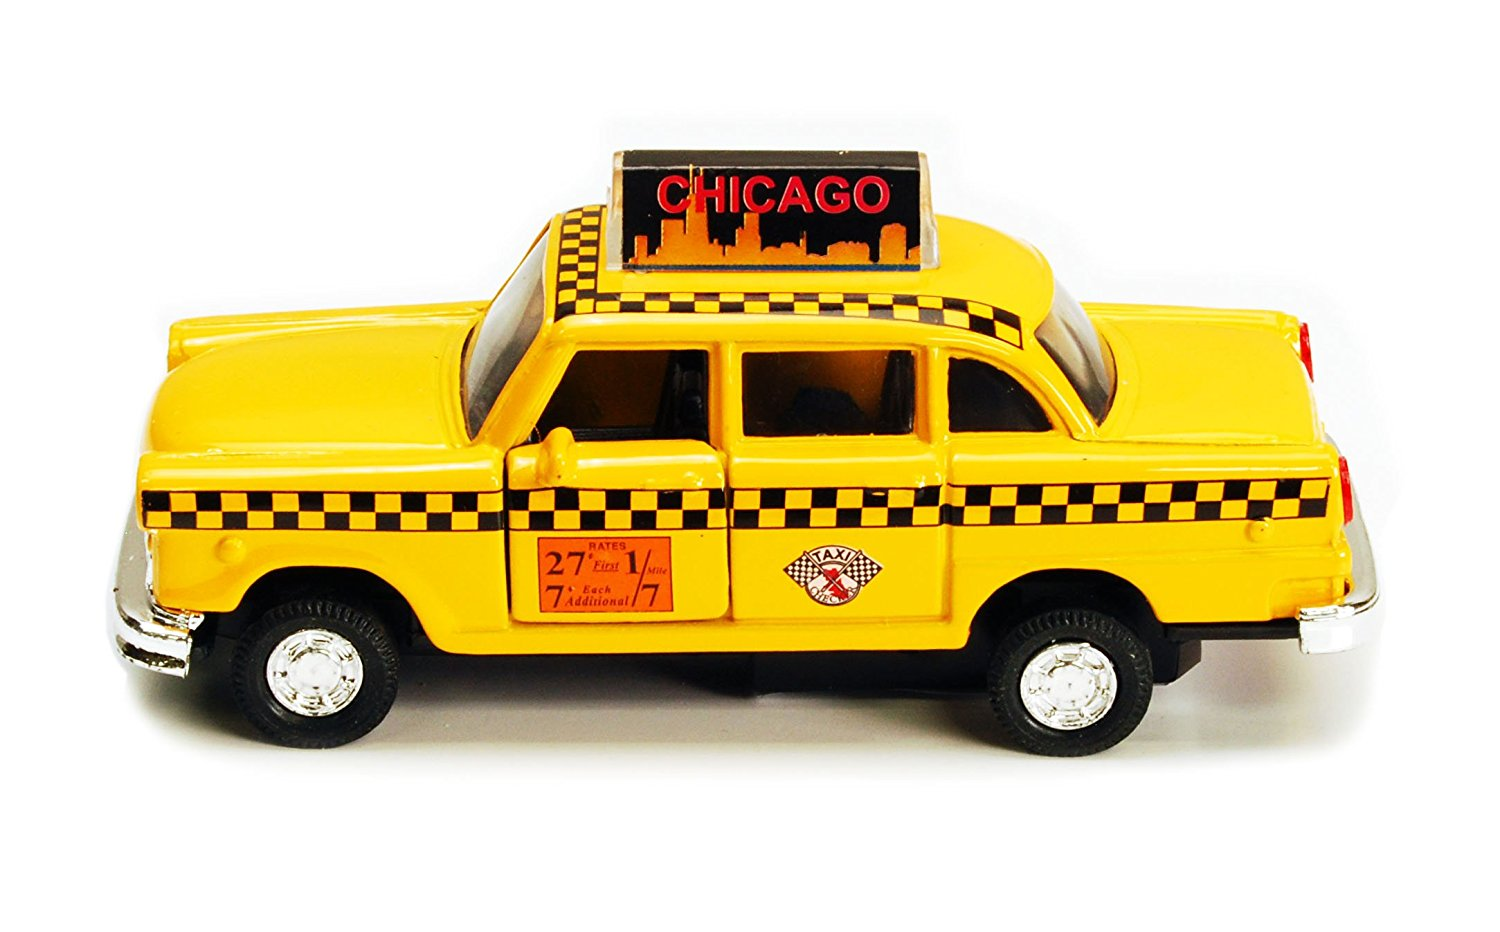 Chicago Illinois Old Yellow Checker Taxi Cab 1:32 Scale Diecast Metal